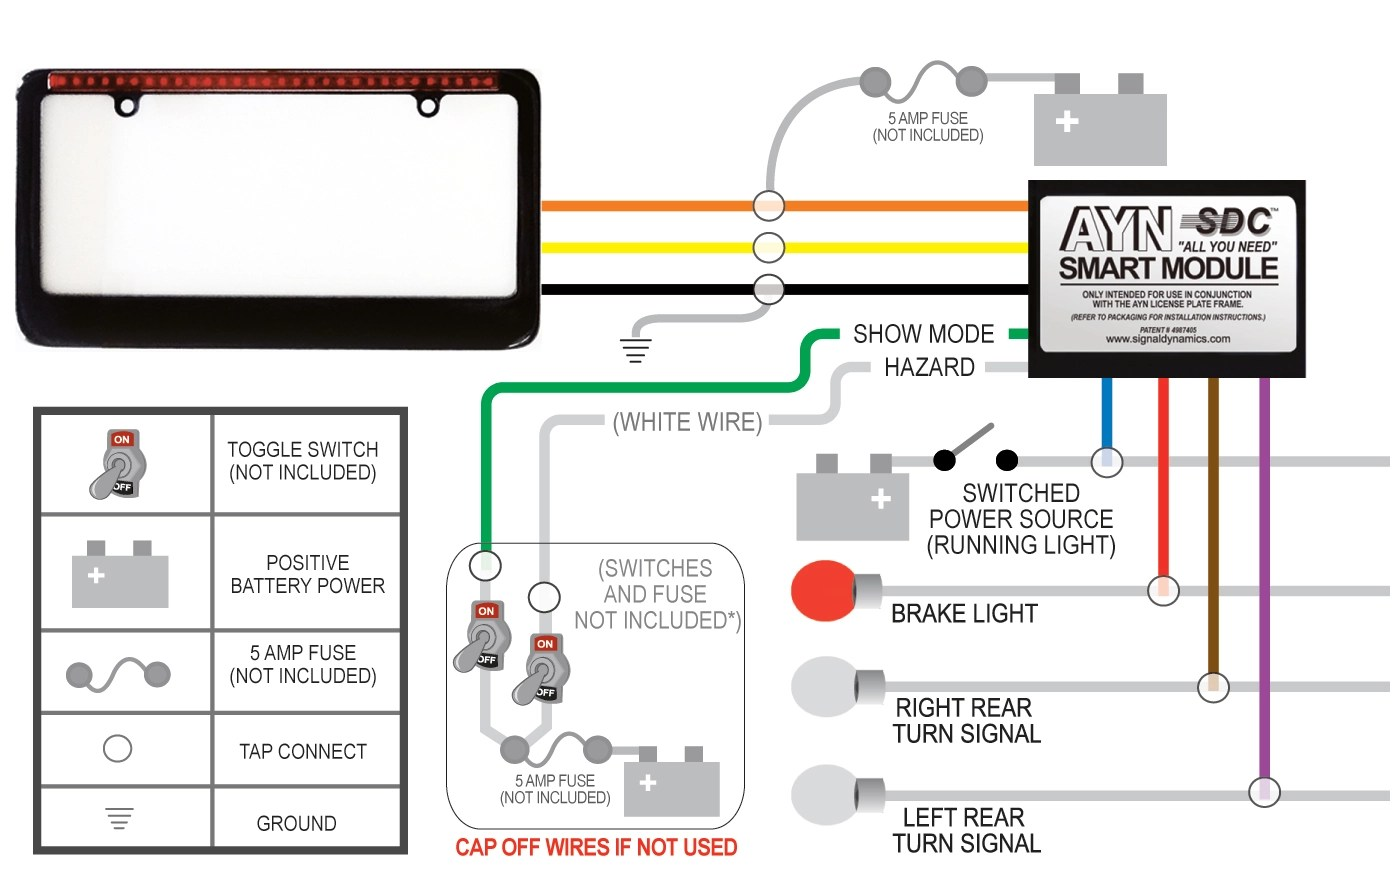 Signal Stat Wiring Related Keywords Suggestions 800 Diagram 900 902